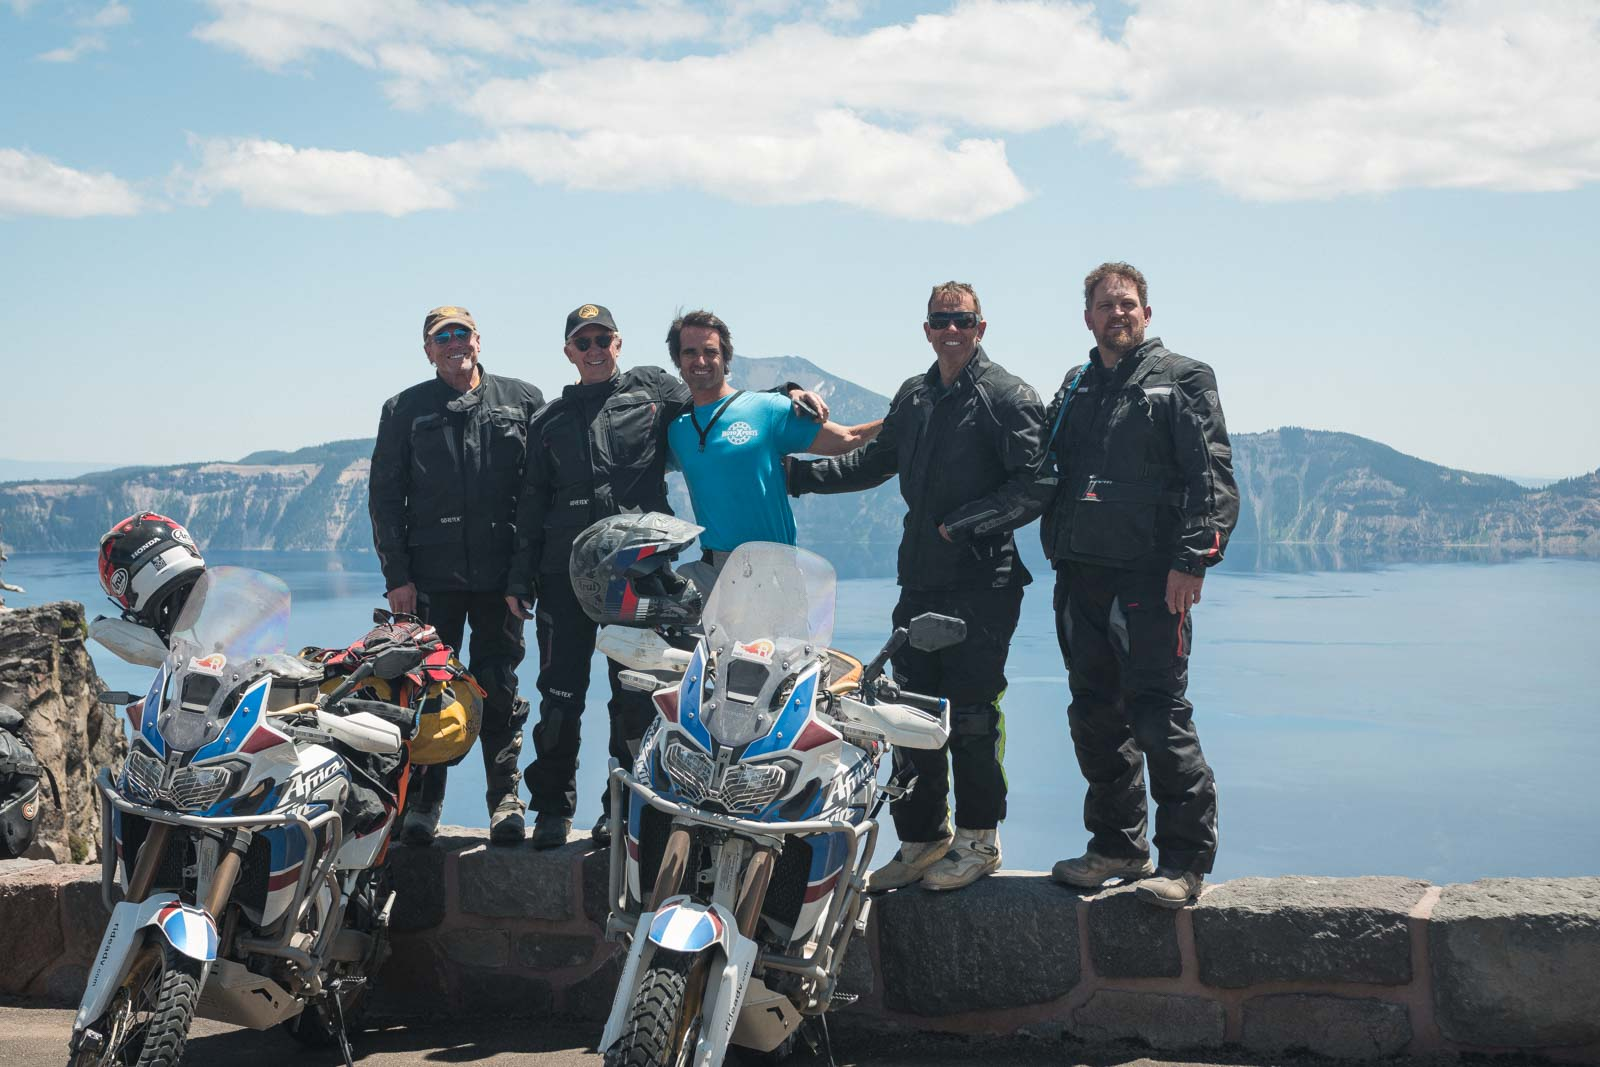 gang-at-crater-lake-national-park-on-adventure-motorcycle-tour-oregon